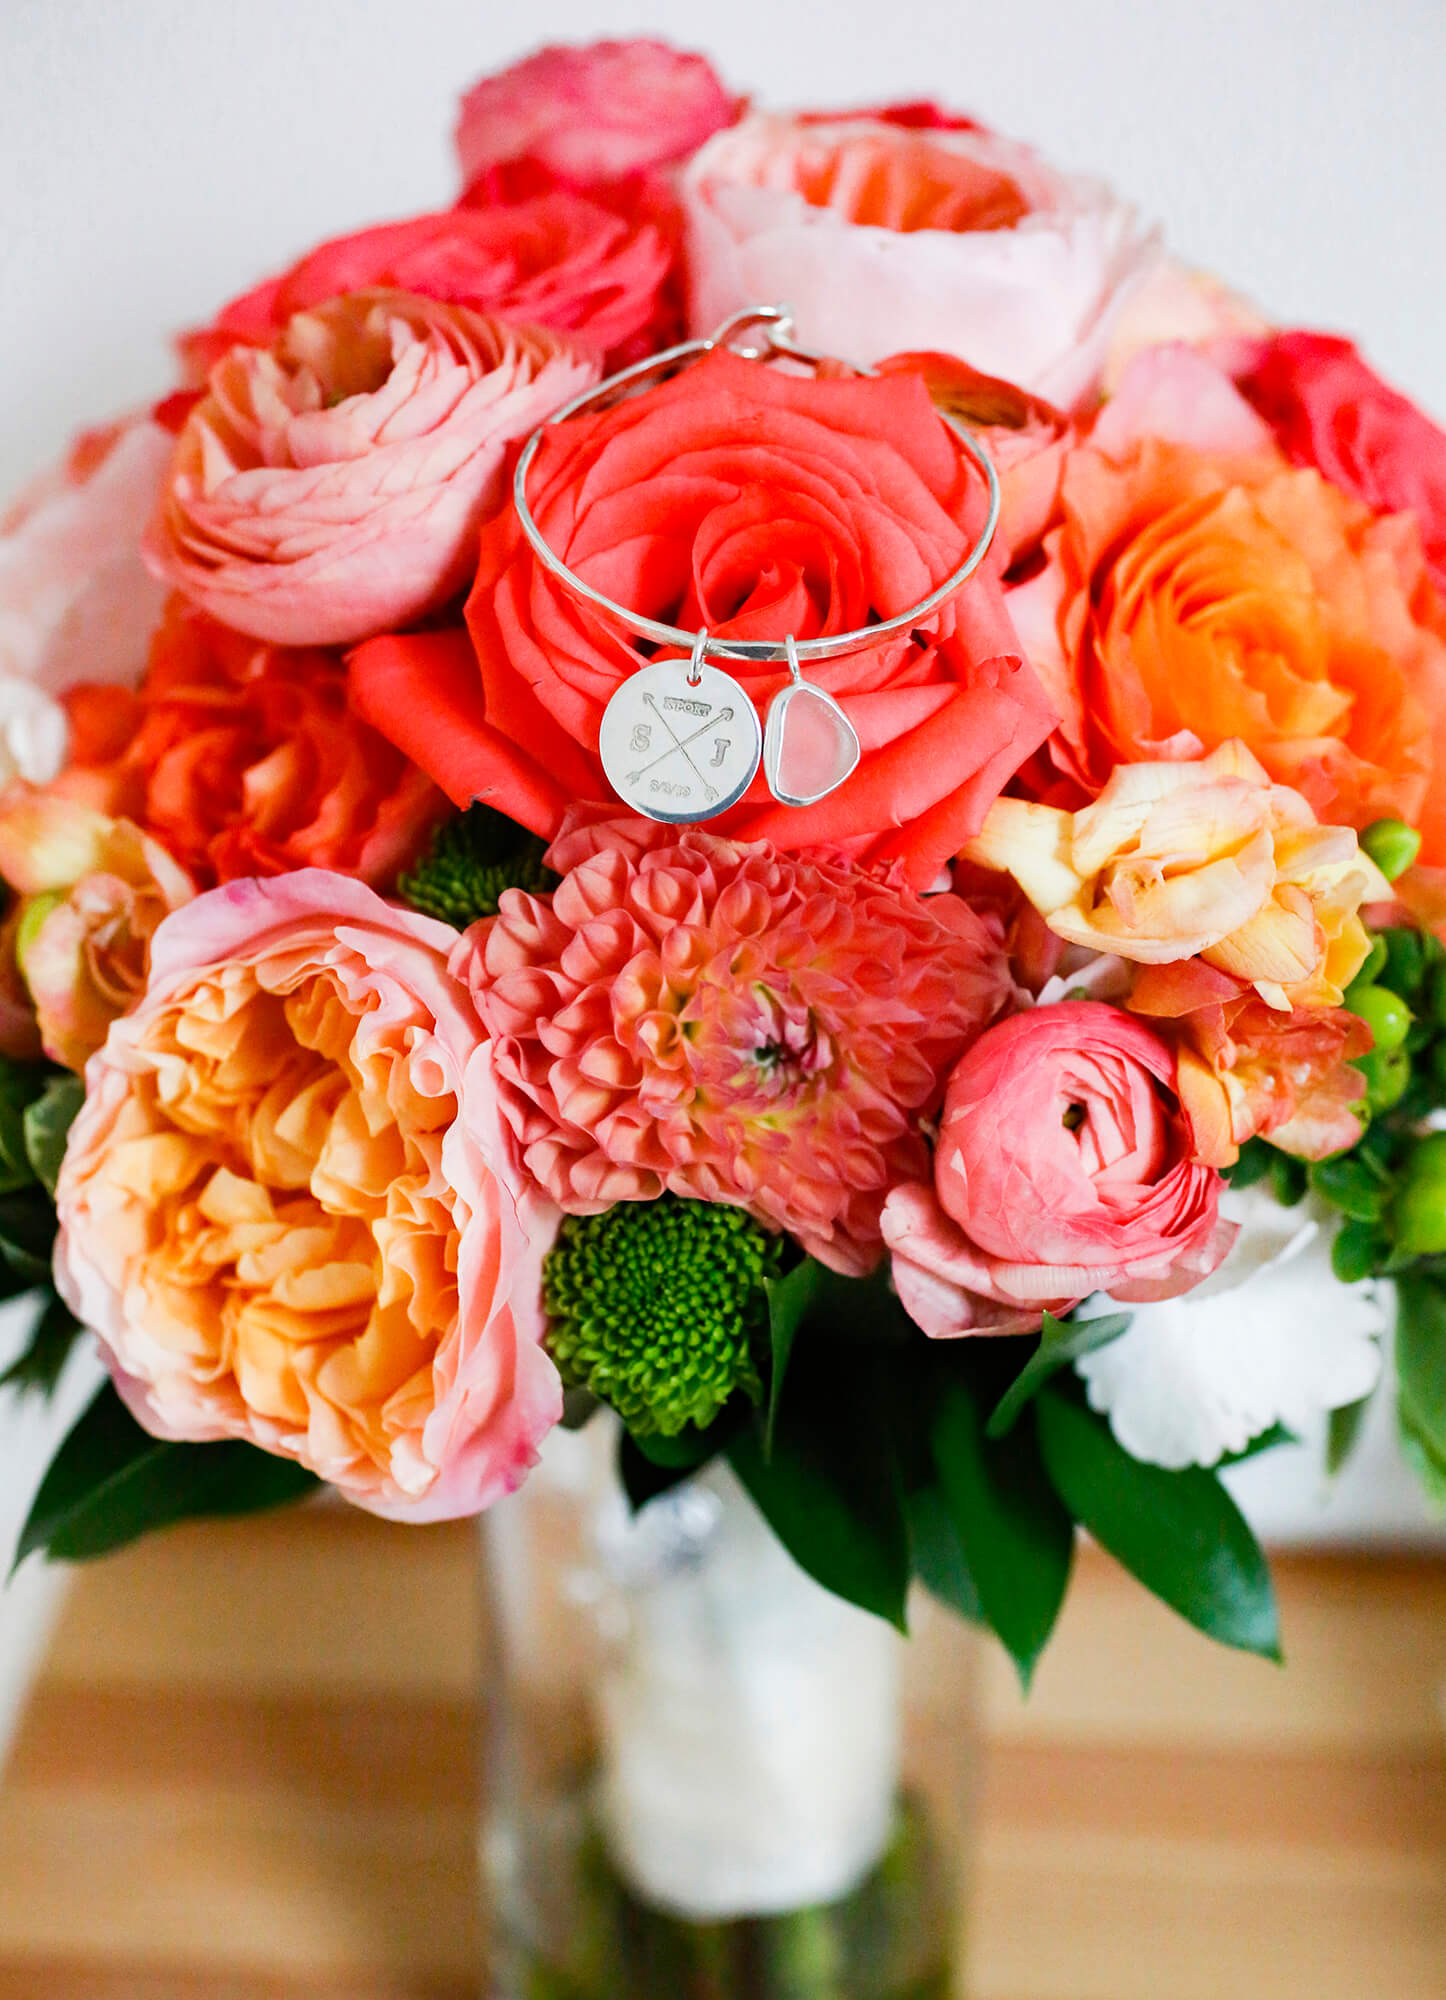 Wedding photography of a bouquet of red and pick flowers